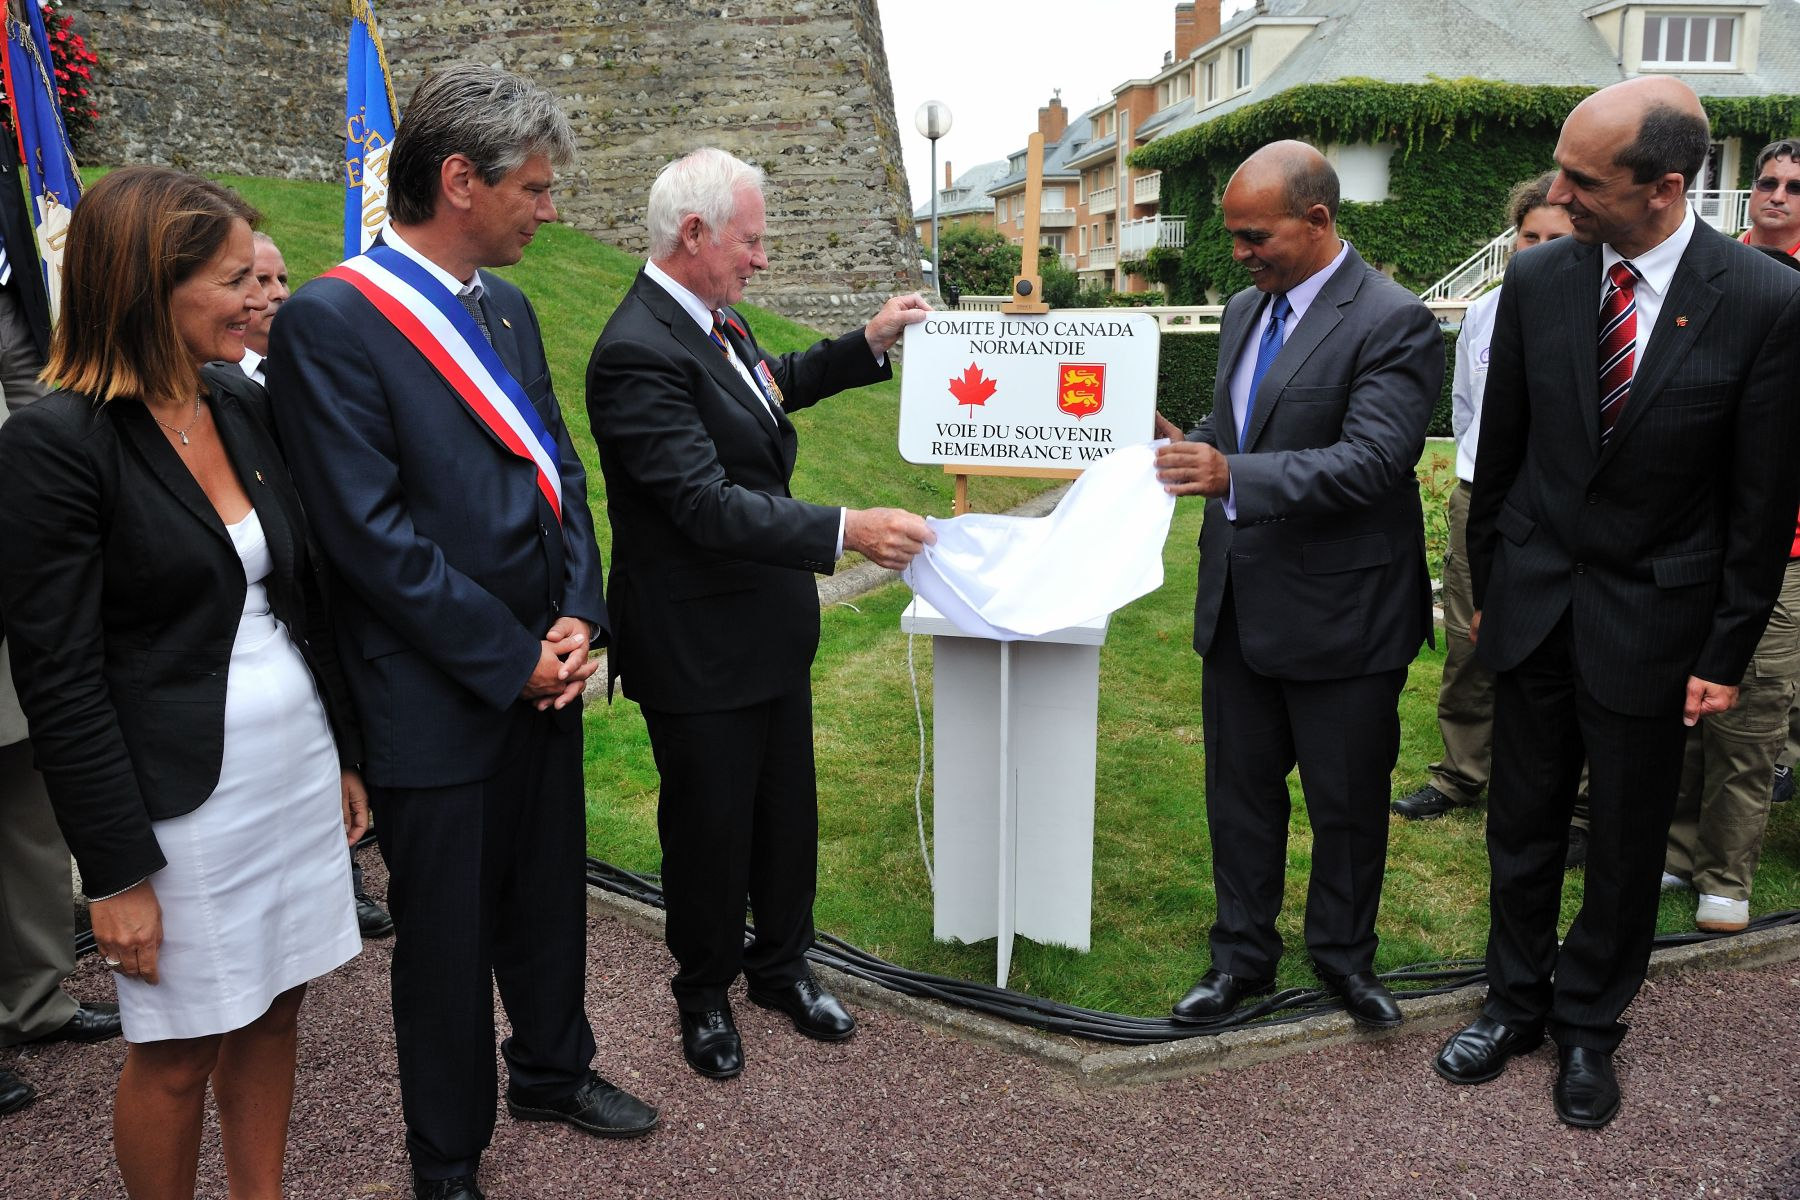 His Excellency helped to unveil a commemorative plaque at the entrance to the Square du Canada.